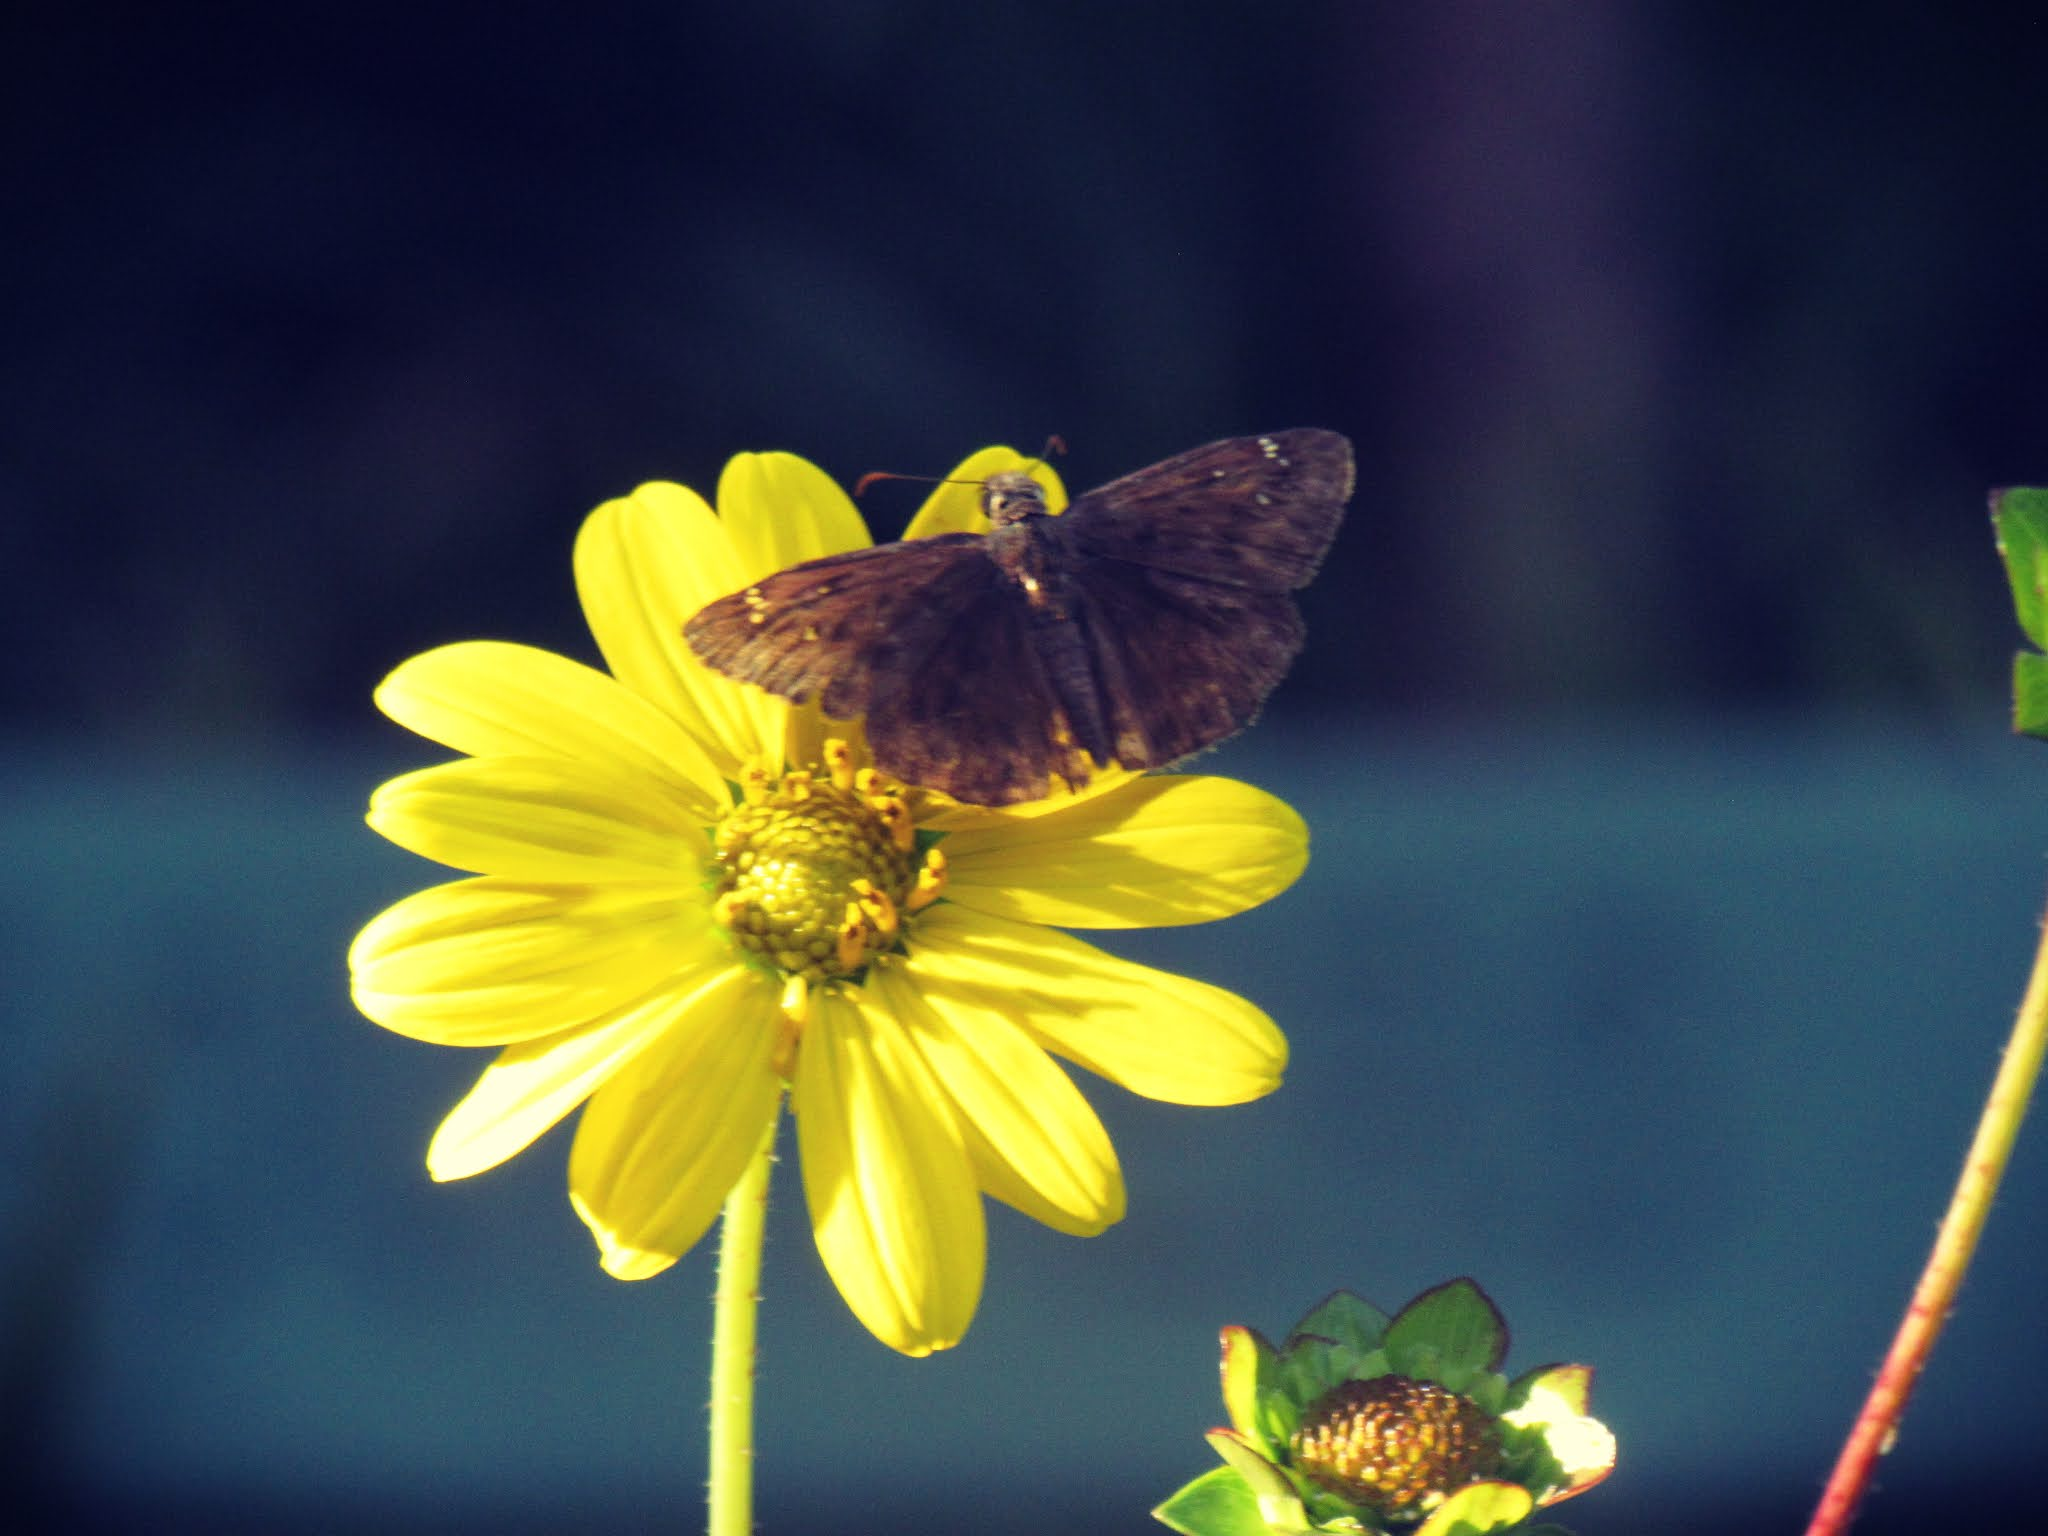 A yellow butterfly botanical with a brown spotted butterfly in Florida's Hammock Park in Dunedin, Florida